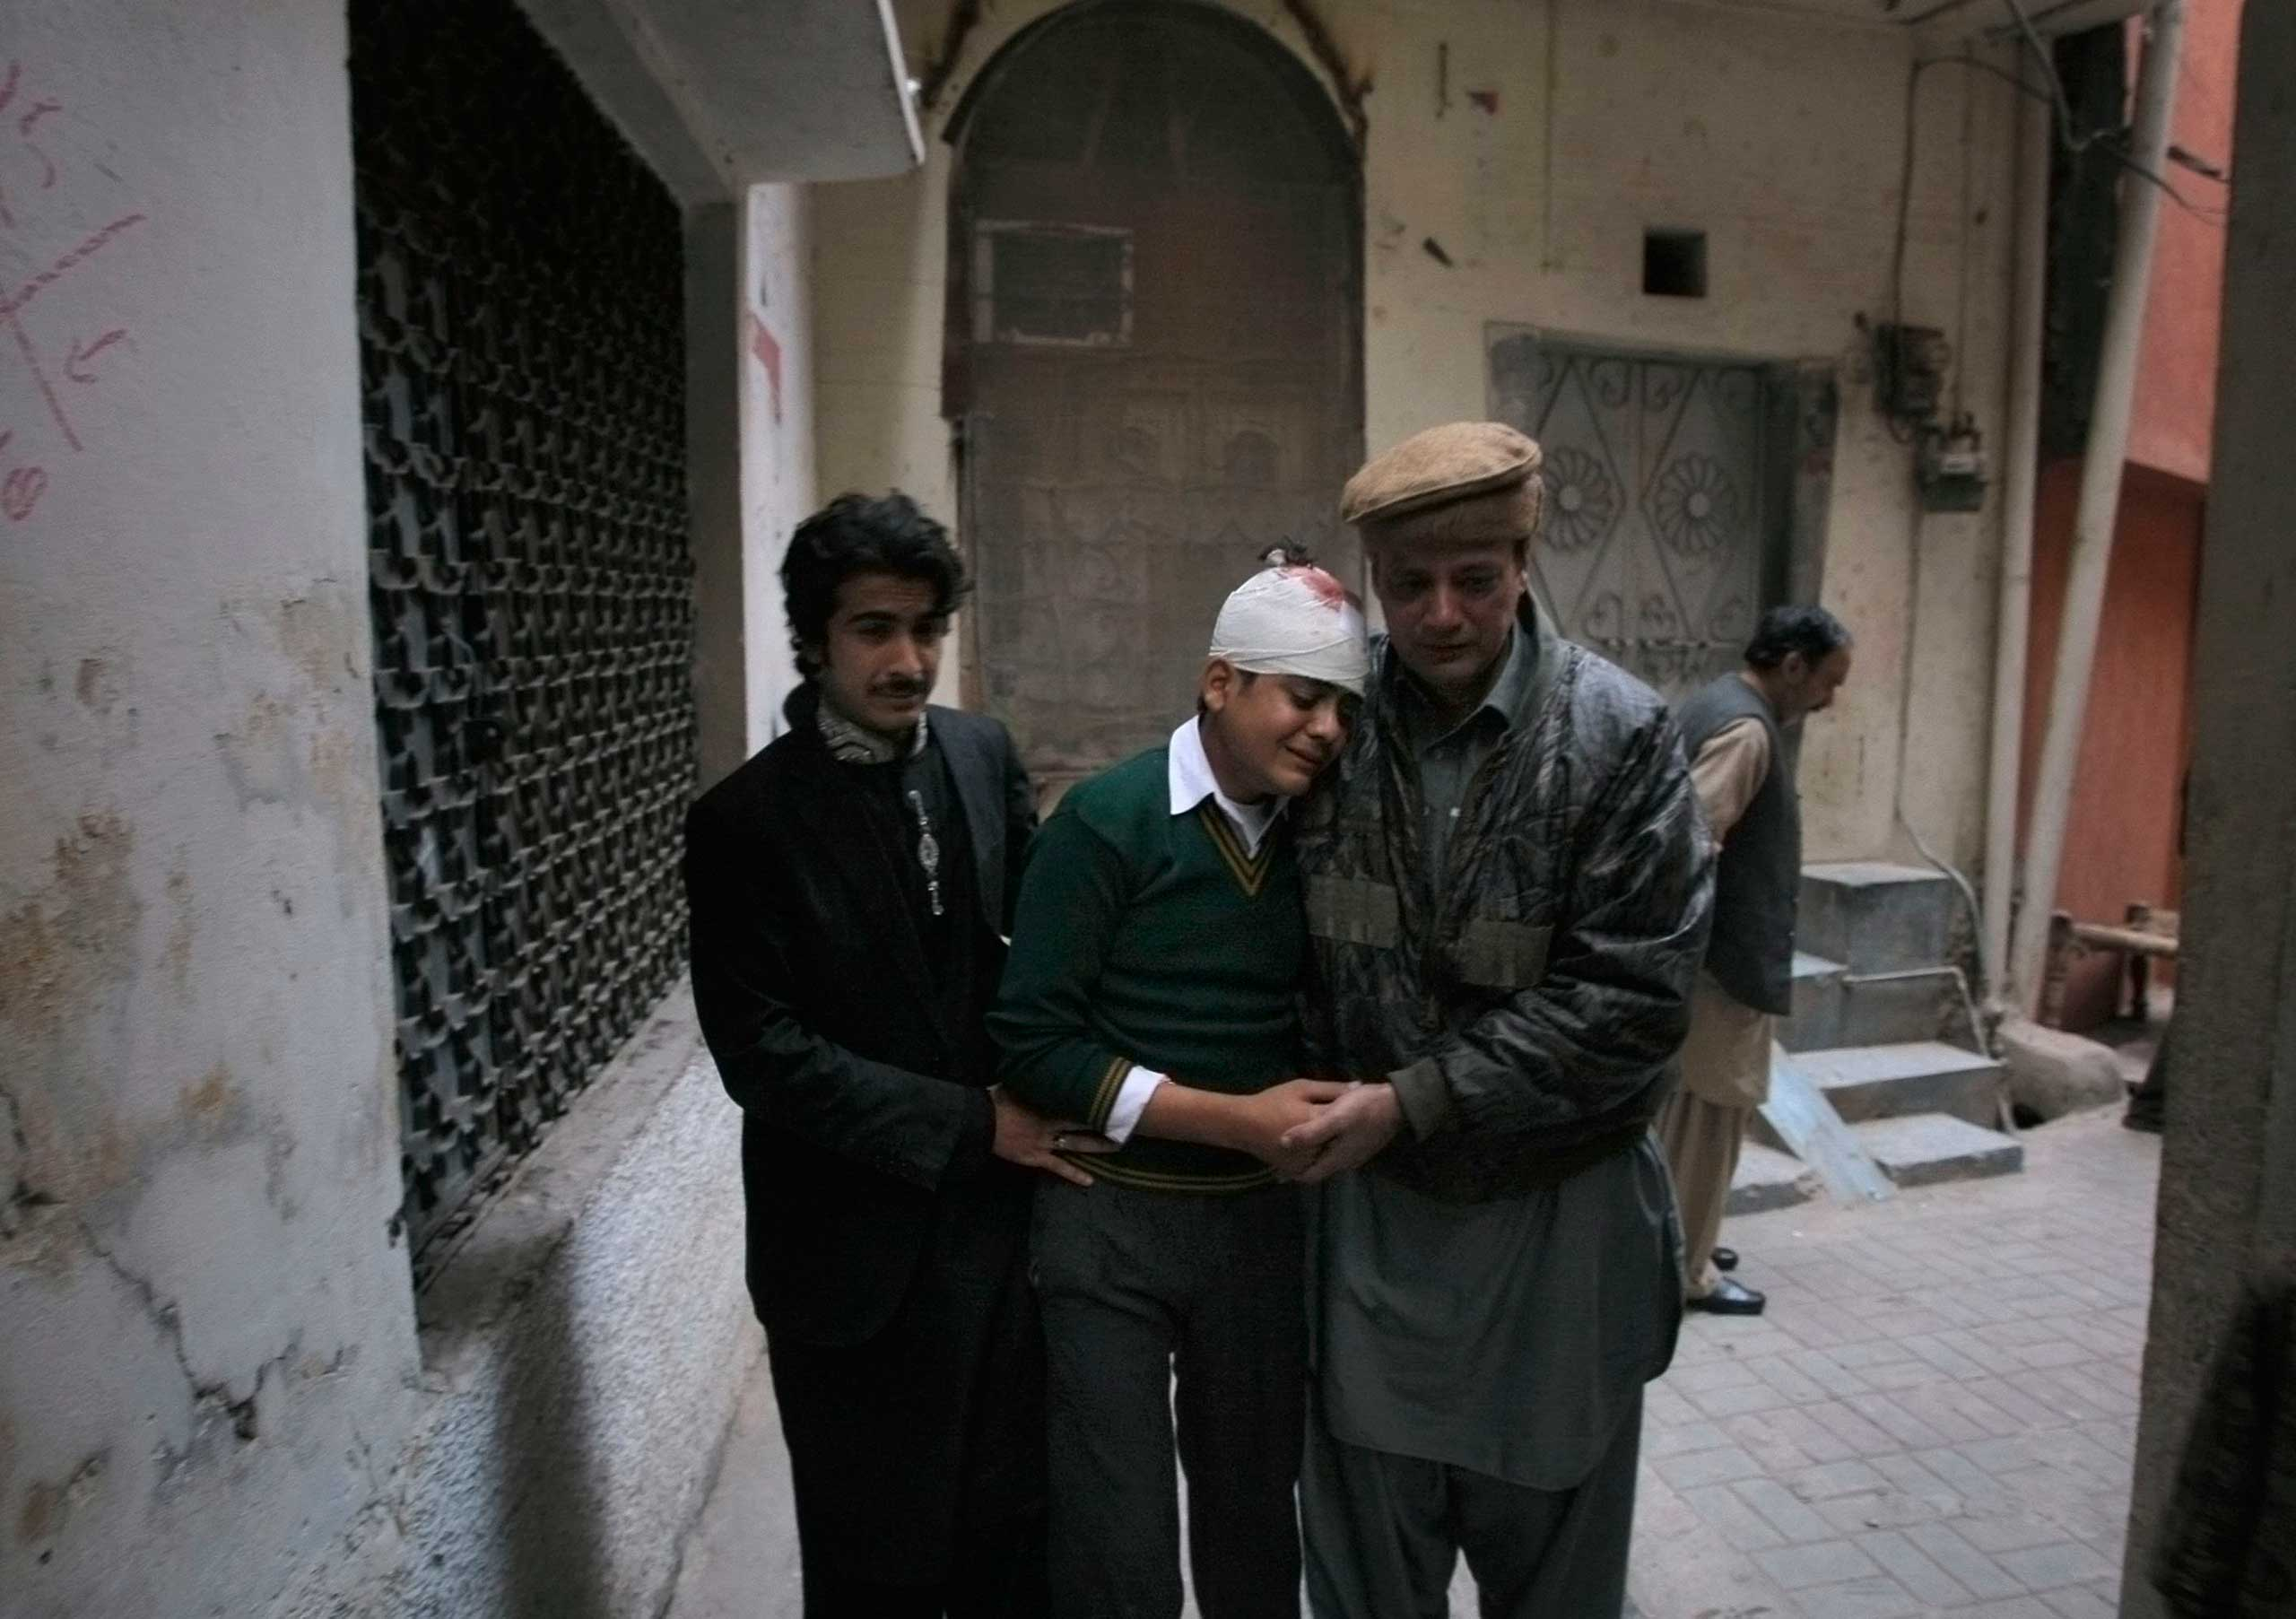 The uncle and cousin of injured student Mohammad Baqair, center, comfort him as he mourns the death of his mother who was a teacher at the school which was attacked by Taliban, in Peshawar, Pakistan on Dec. 16, 2014.